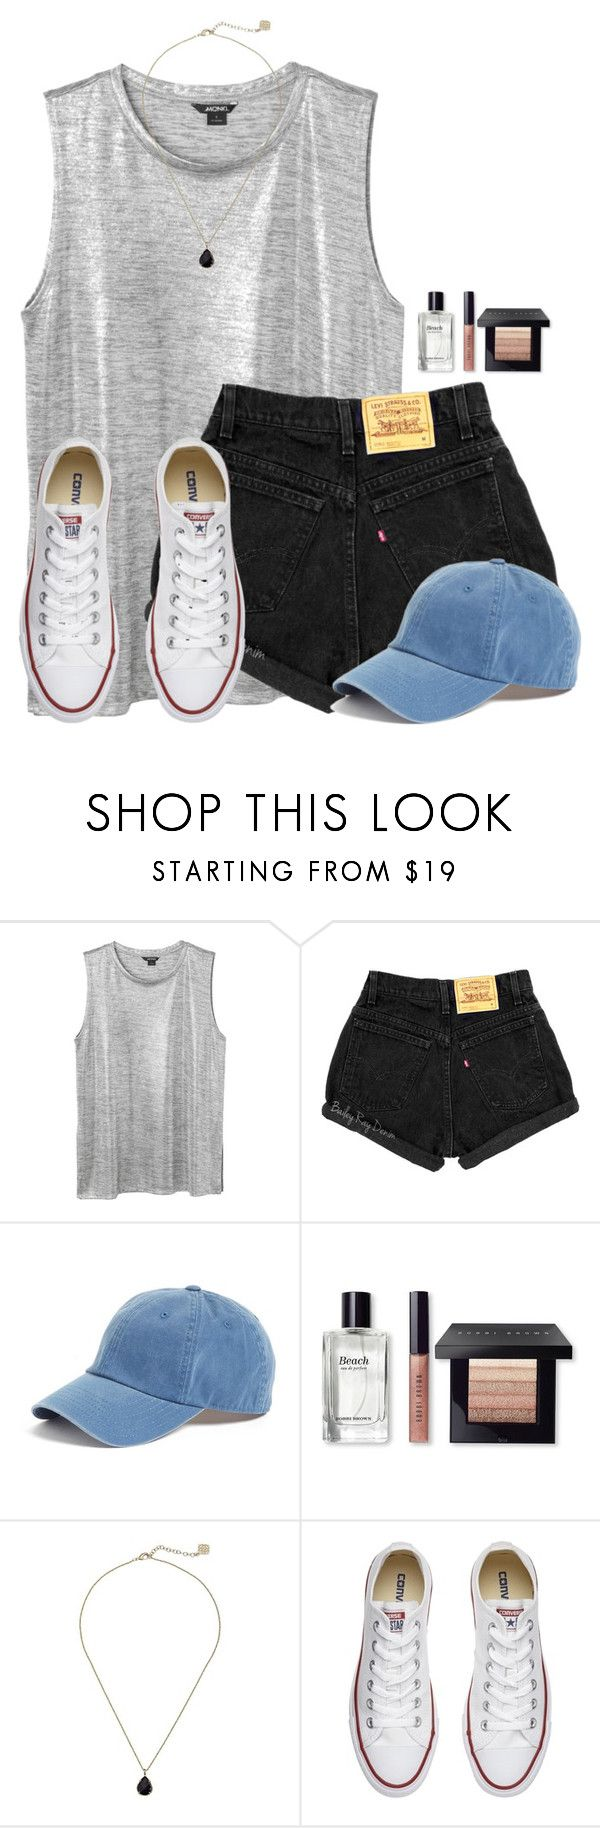 """""""~its all for you in my pursuit for happiness~"""" by victoriaann34 ❤ liked on Polyvore featuring Monki, American Needle, Bobbi Brown Cosmetics, Kendra Scott and Converse"""